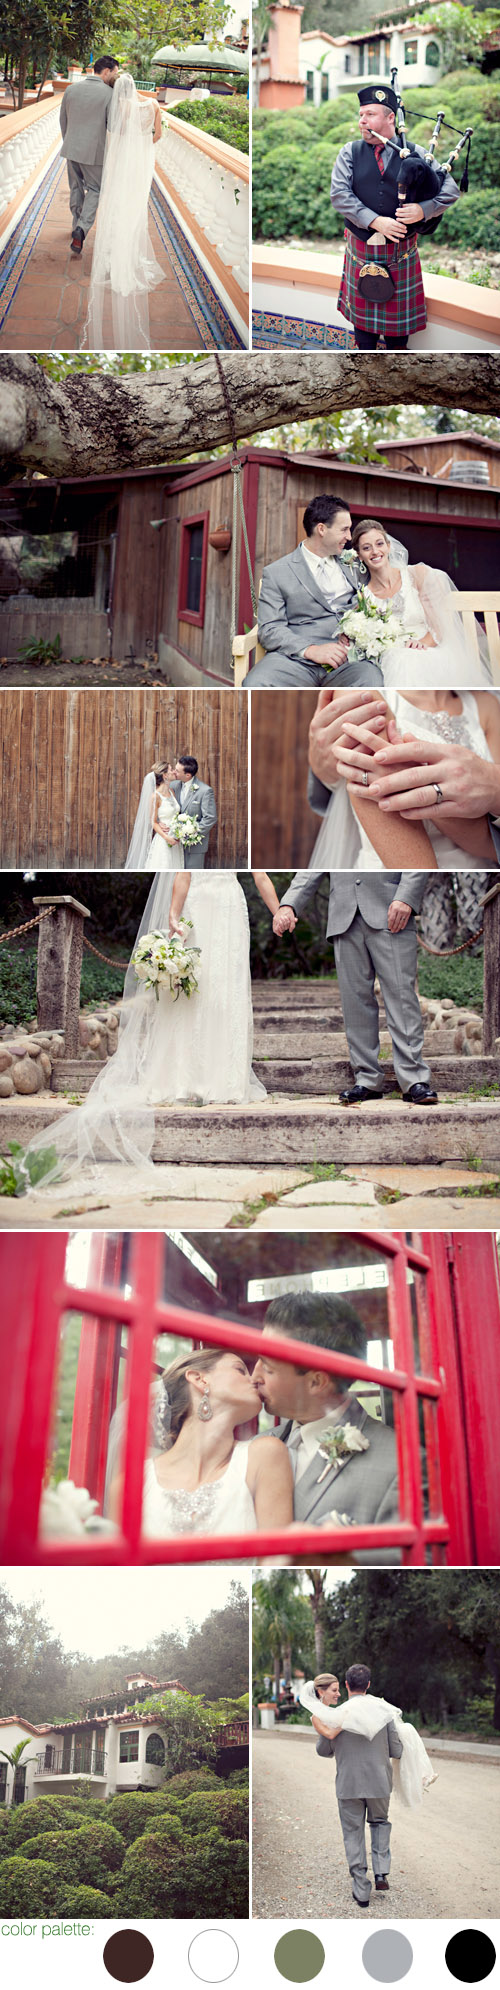 nature-inspired family real wedding at Rancho Las Lomas, Silverado, CA, photography by Photos by Taryn